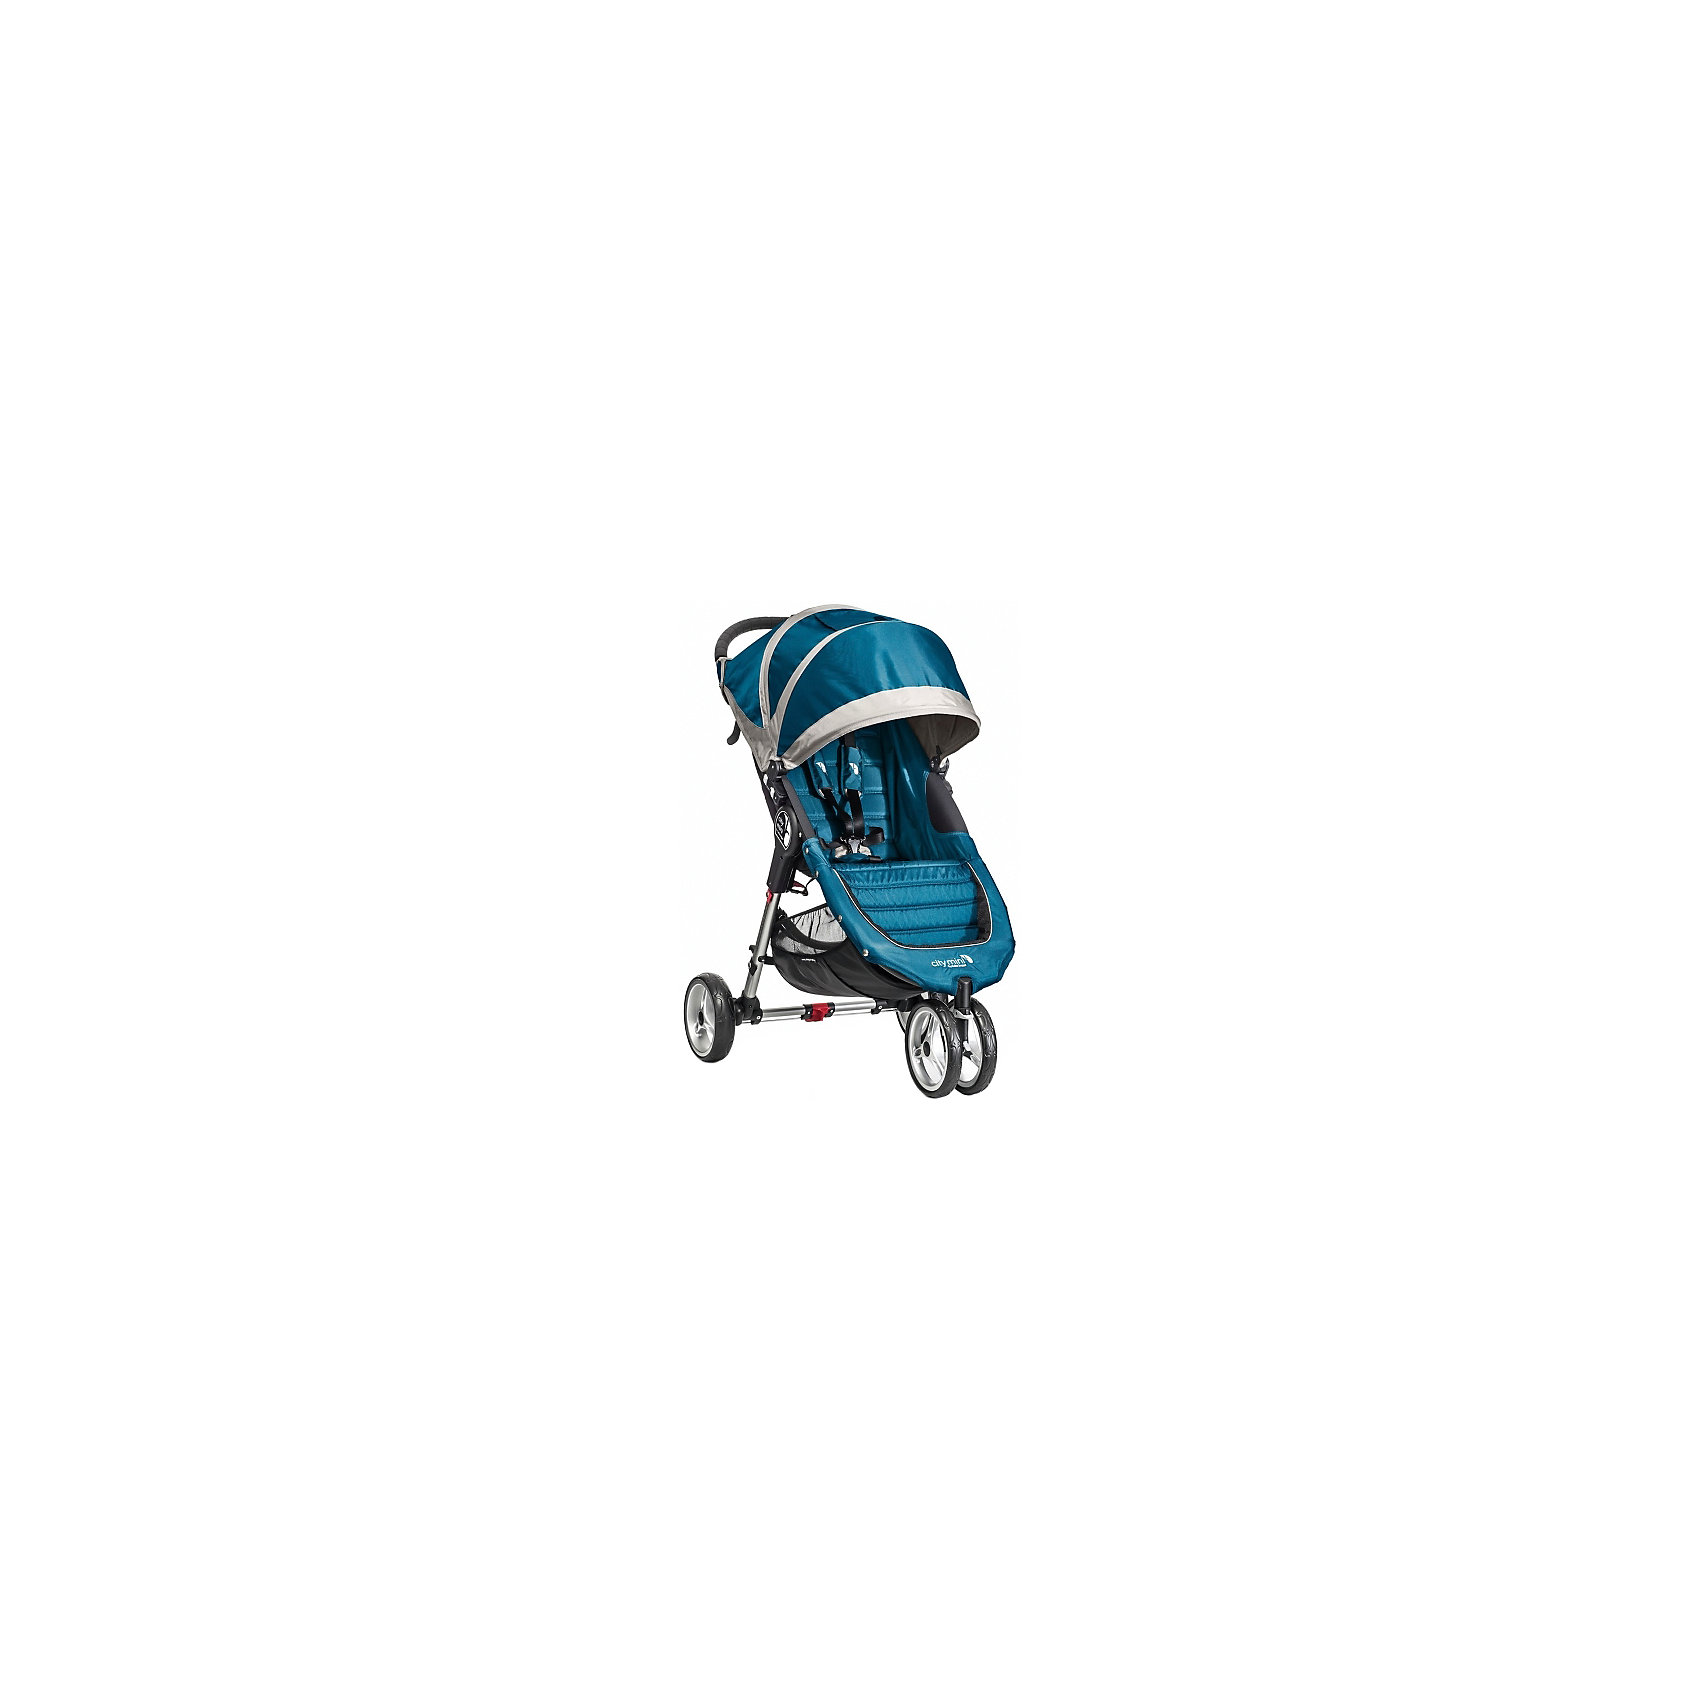 Baby Jogger Прогулочная коляска City Mini Single, Baby Jogger, бирюзовый-серый прогулочная коляска cool baby kdd 6699gb t fuchsia light grey